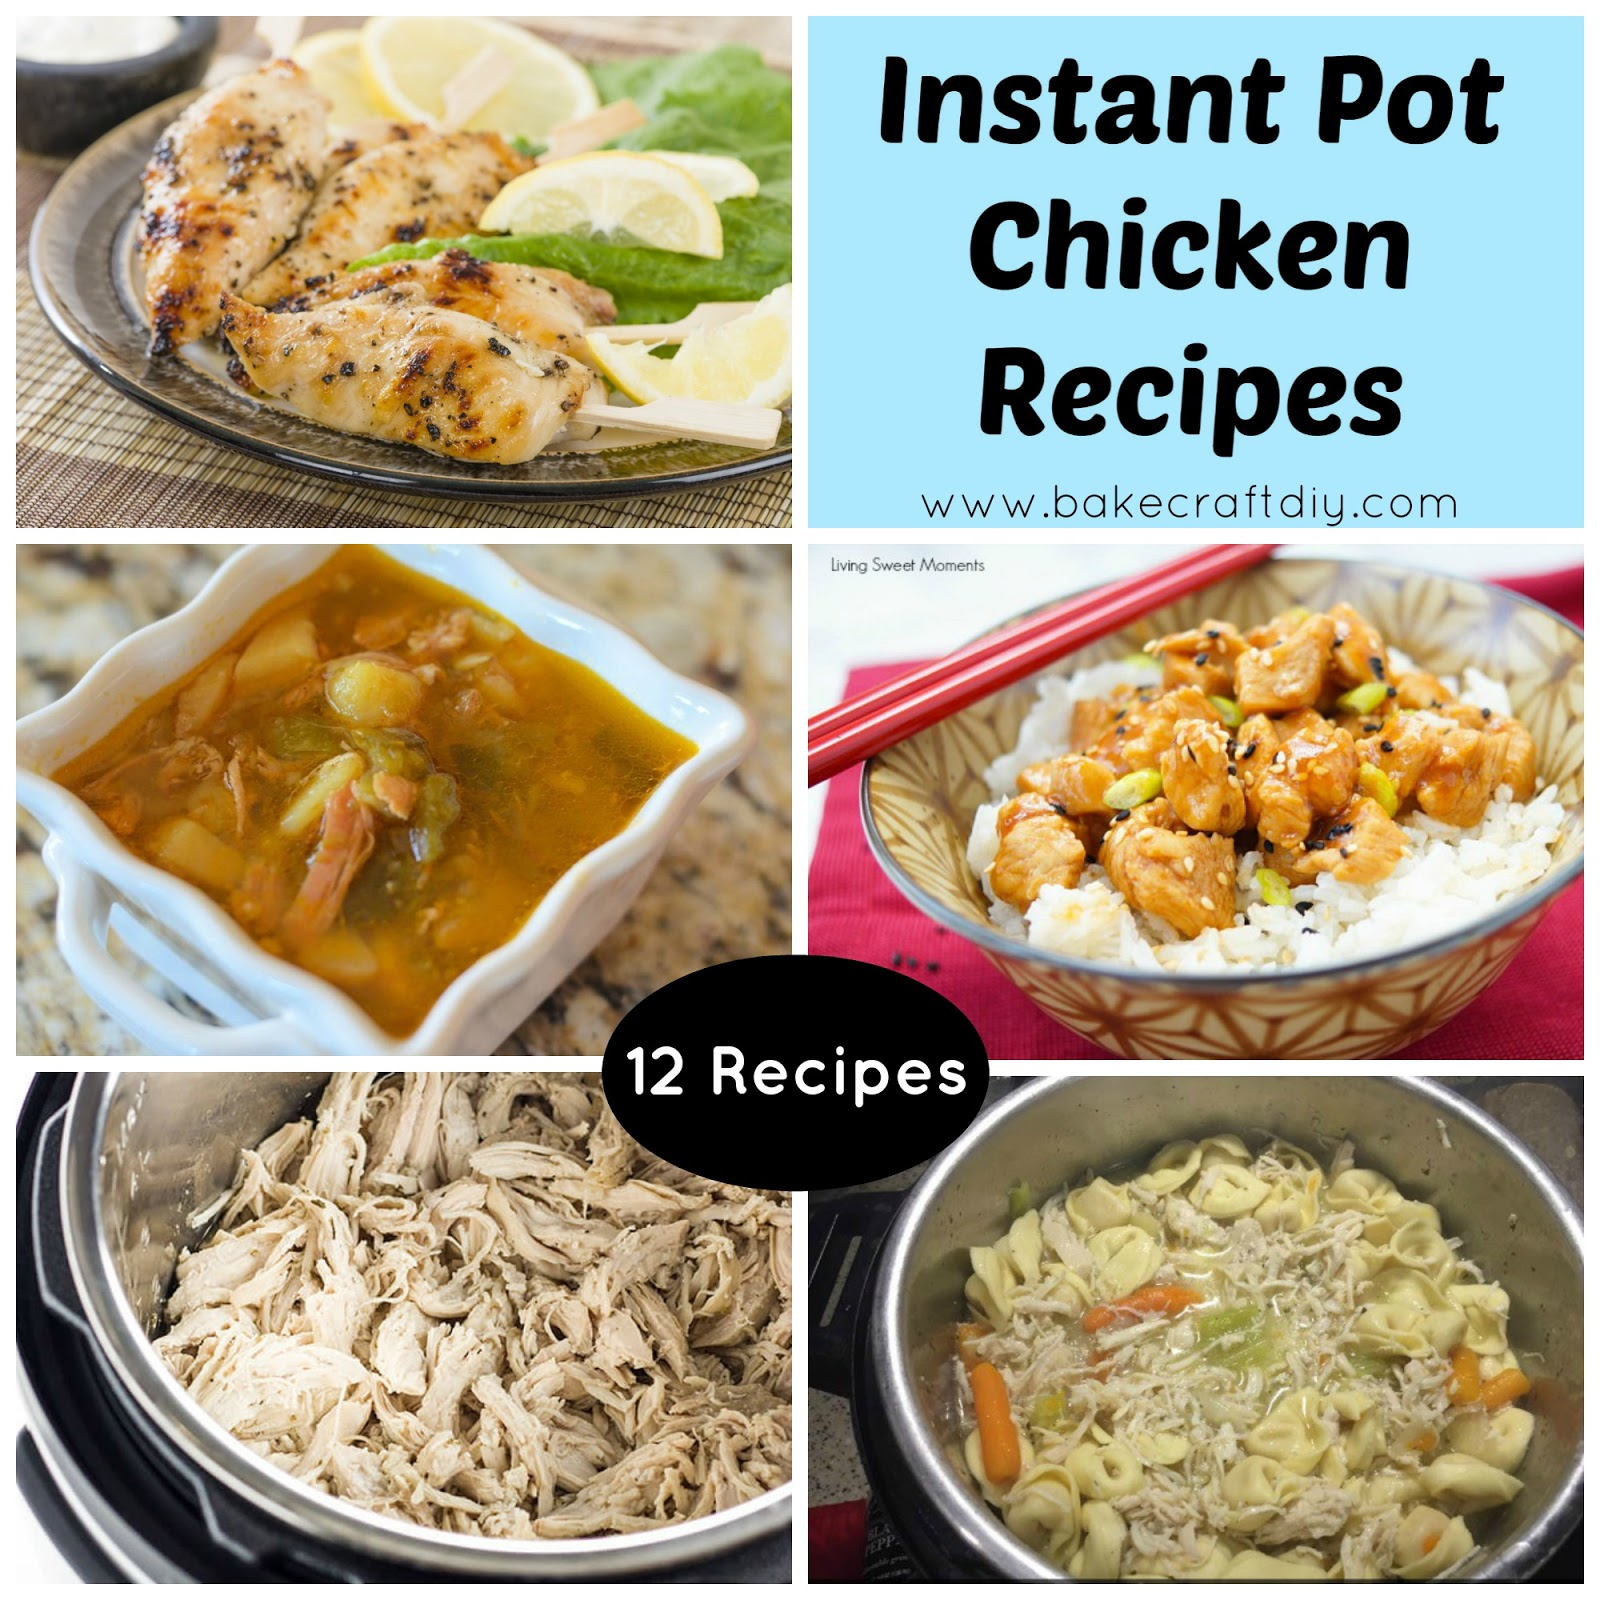 Bake craft diy instant pot chicken recipes for Chicken recipes for the instant pot